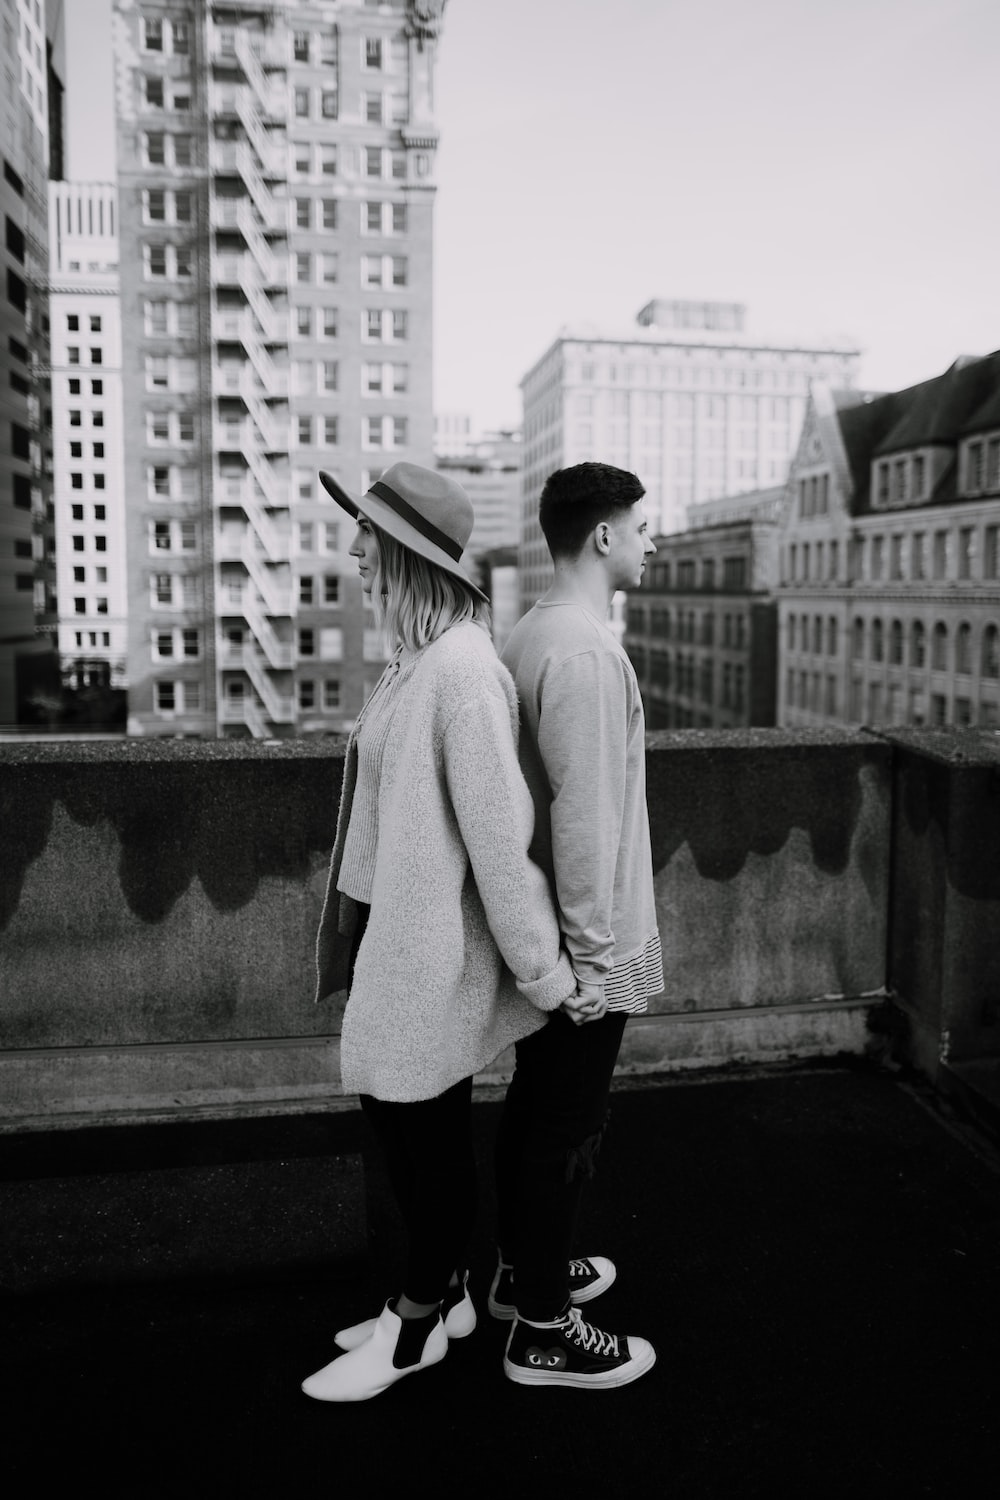 grayscale photography of standing man and woman near outdoor during daytime